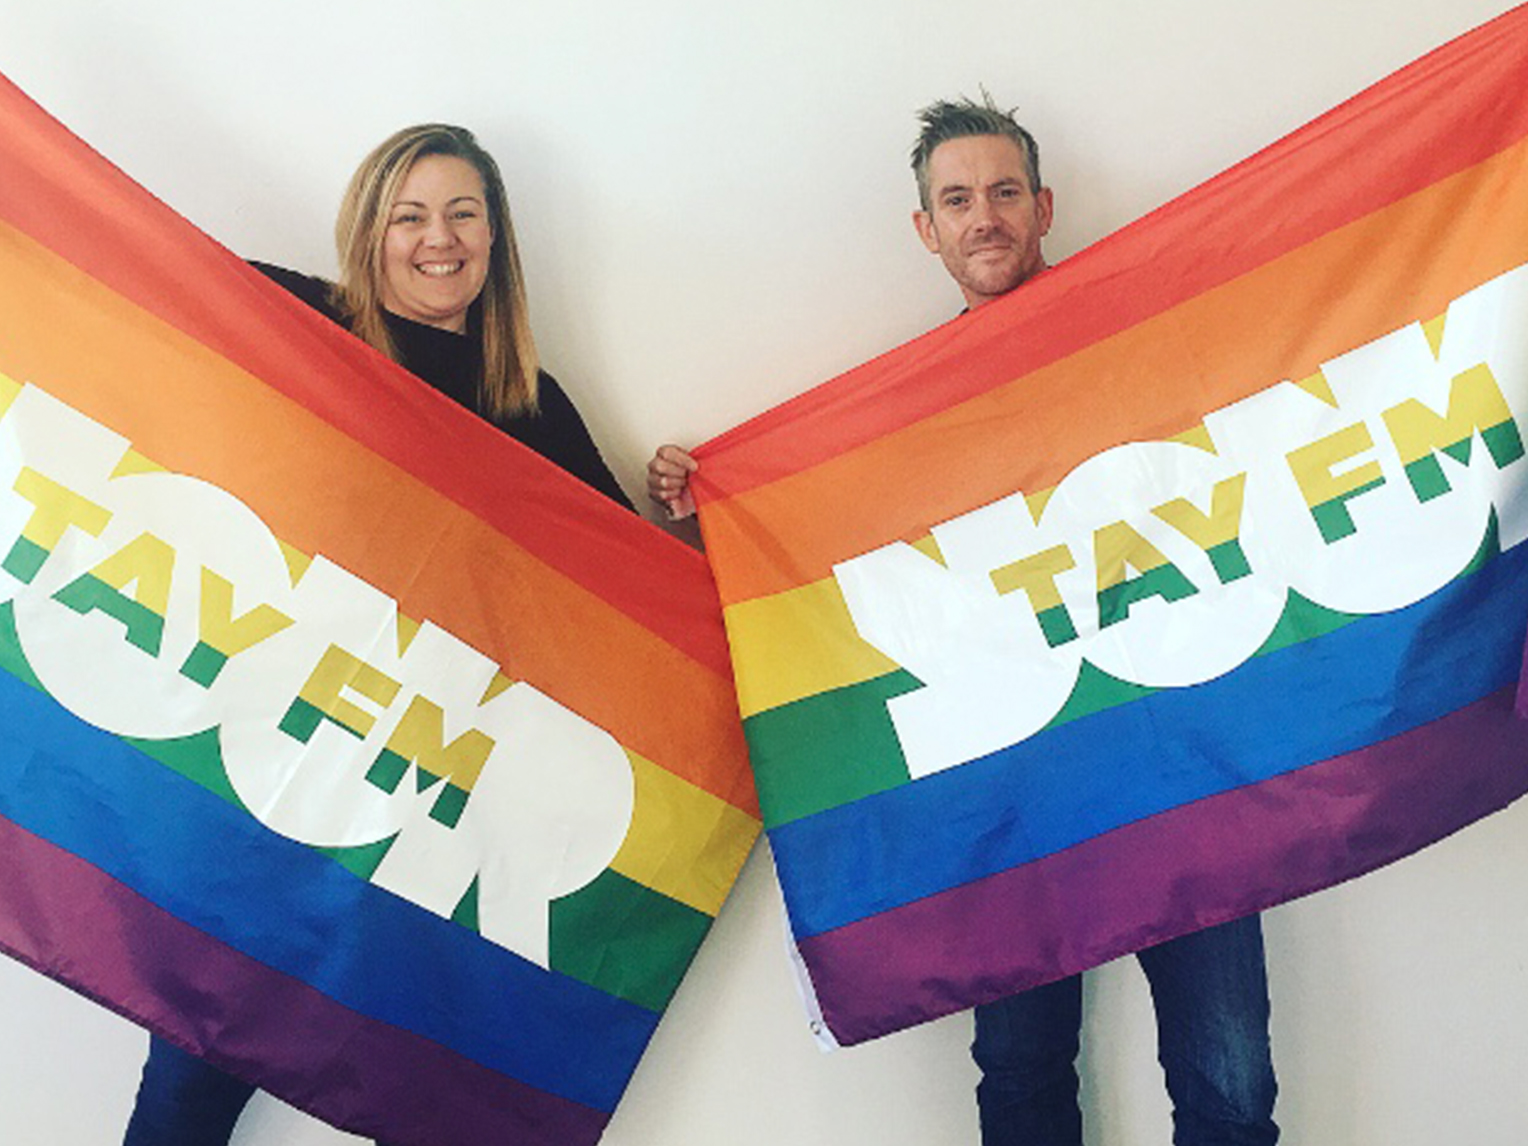 listen here, henny….. - As part of our partnership with Tay FM, we are launching a podcast for Dundee Pride 2019. Featuring Dundee Pride trustees and volunteers, as well as members of the LGBTQ community.Dundee Pride Podcast:Episode 1 - Introduction to Dundee Pride 2019Listen here.Episode 2 - Dundee Pride 2019 Co-Hosts revealed!Listen here.